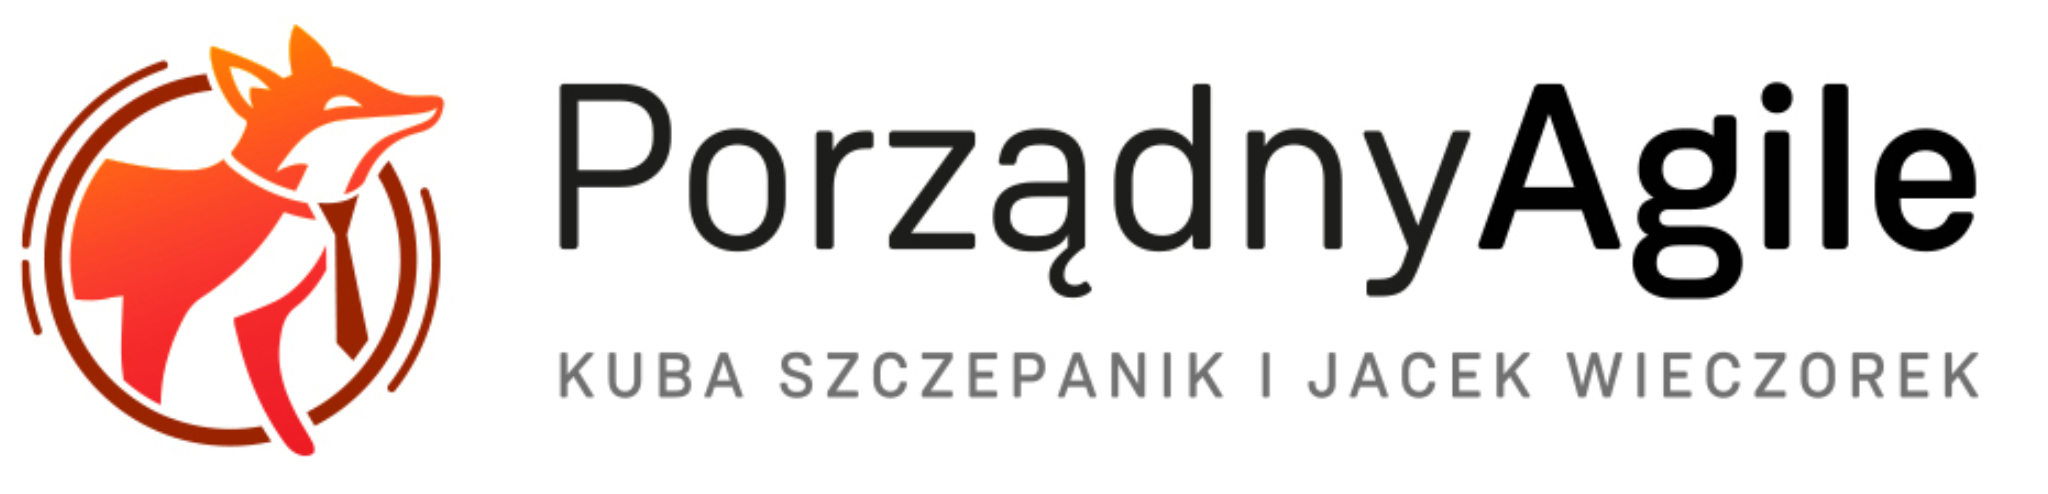 "Logo for Podcast ""Porządny Agile"""